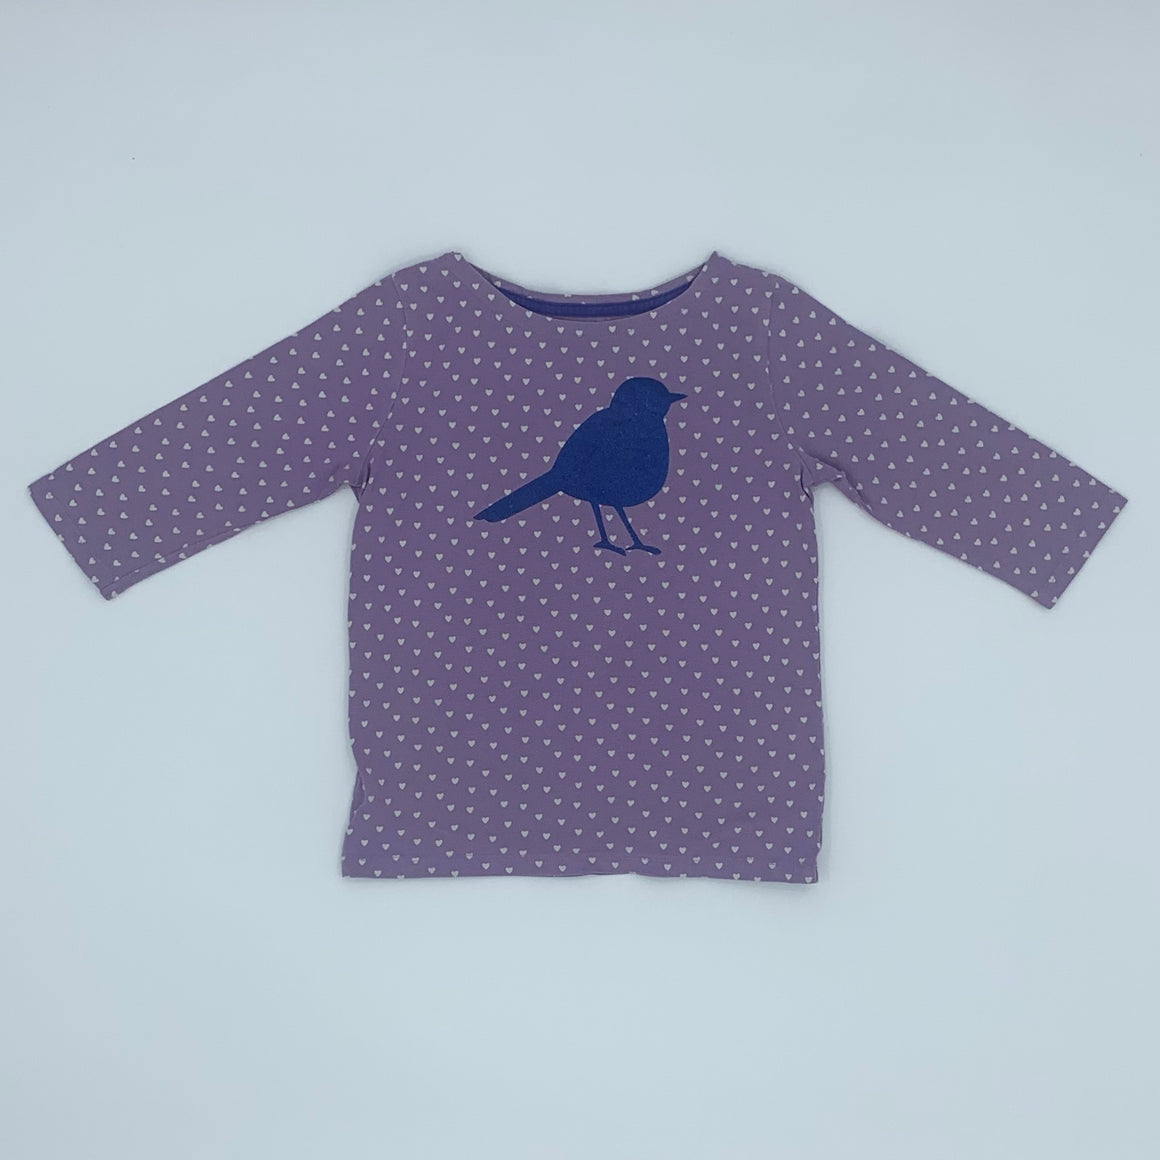 Gently Worn Boden spotted top size 5-6 years